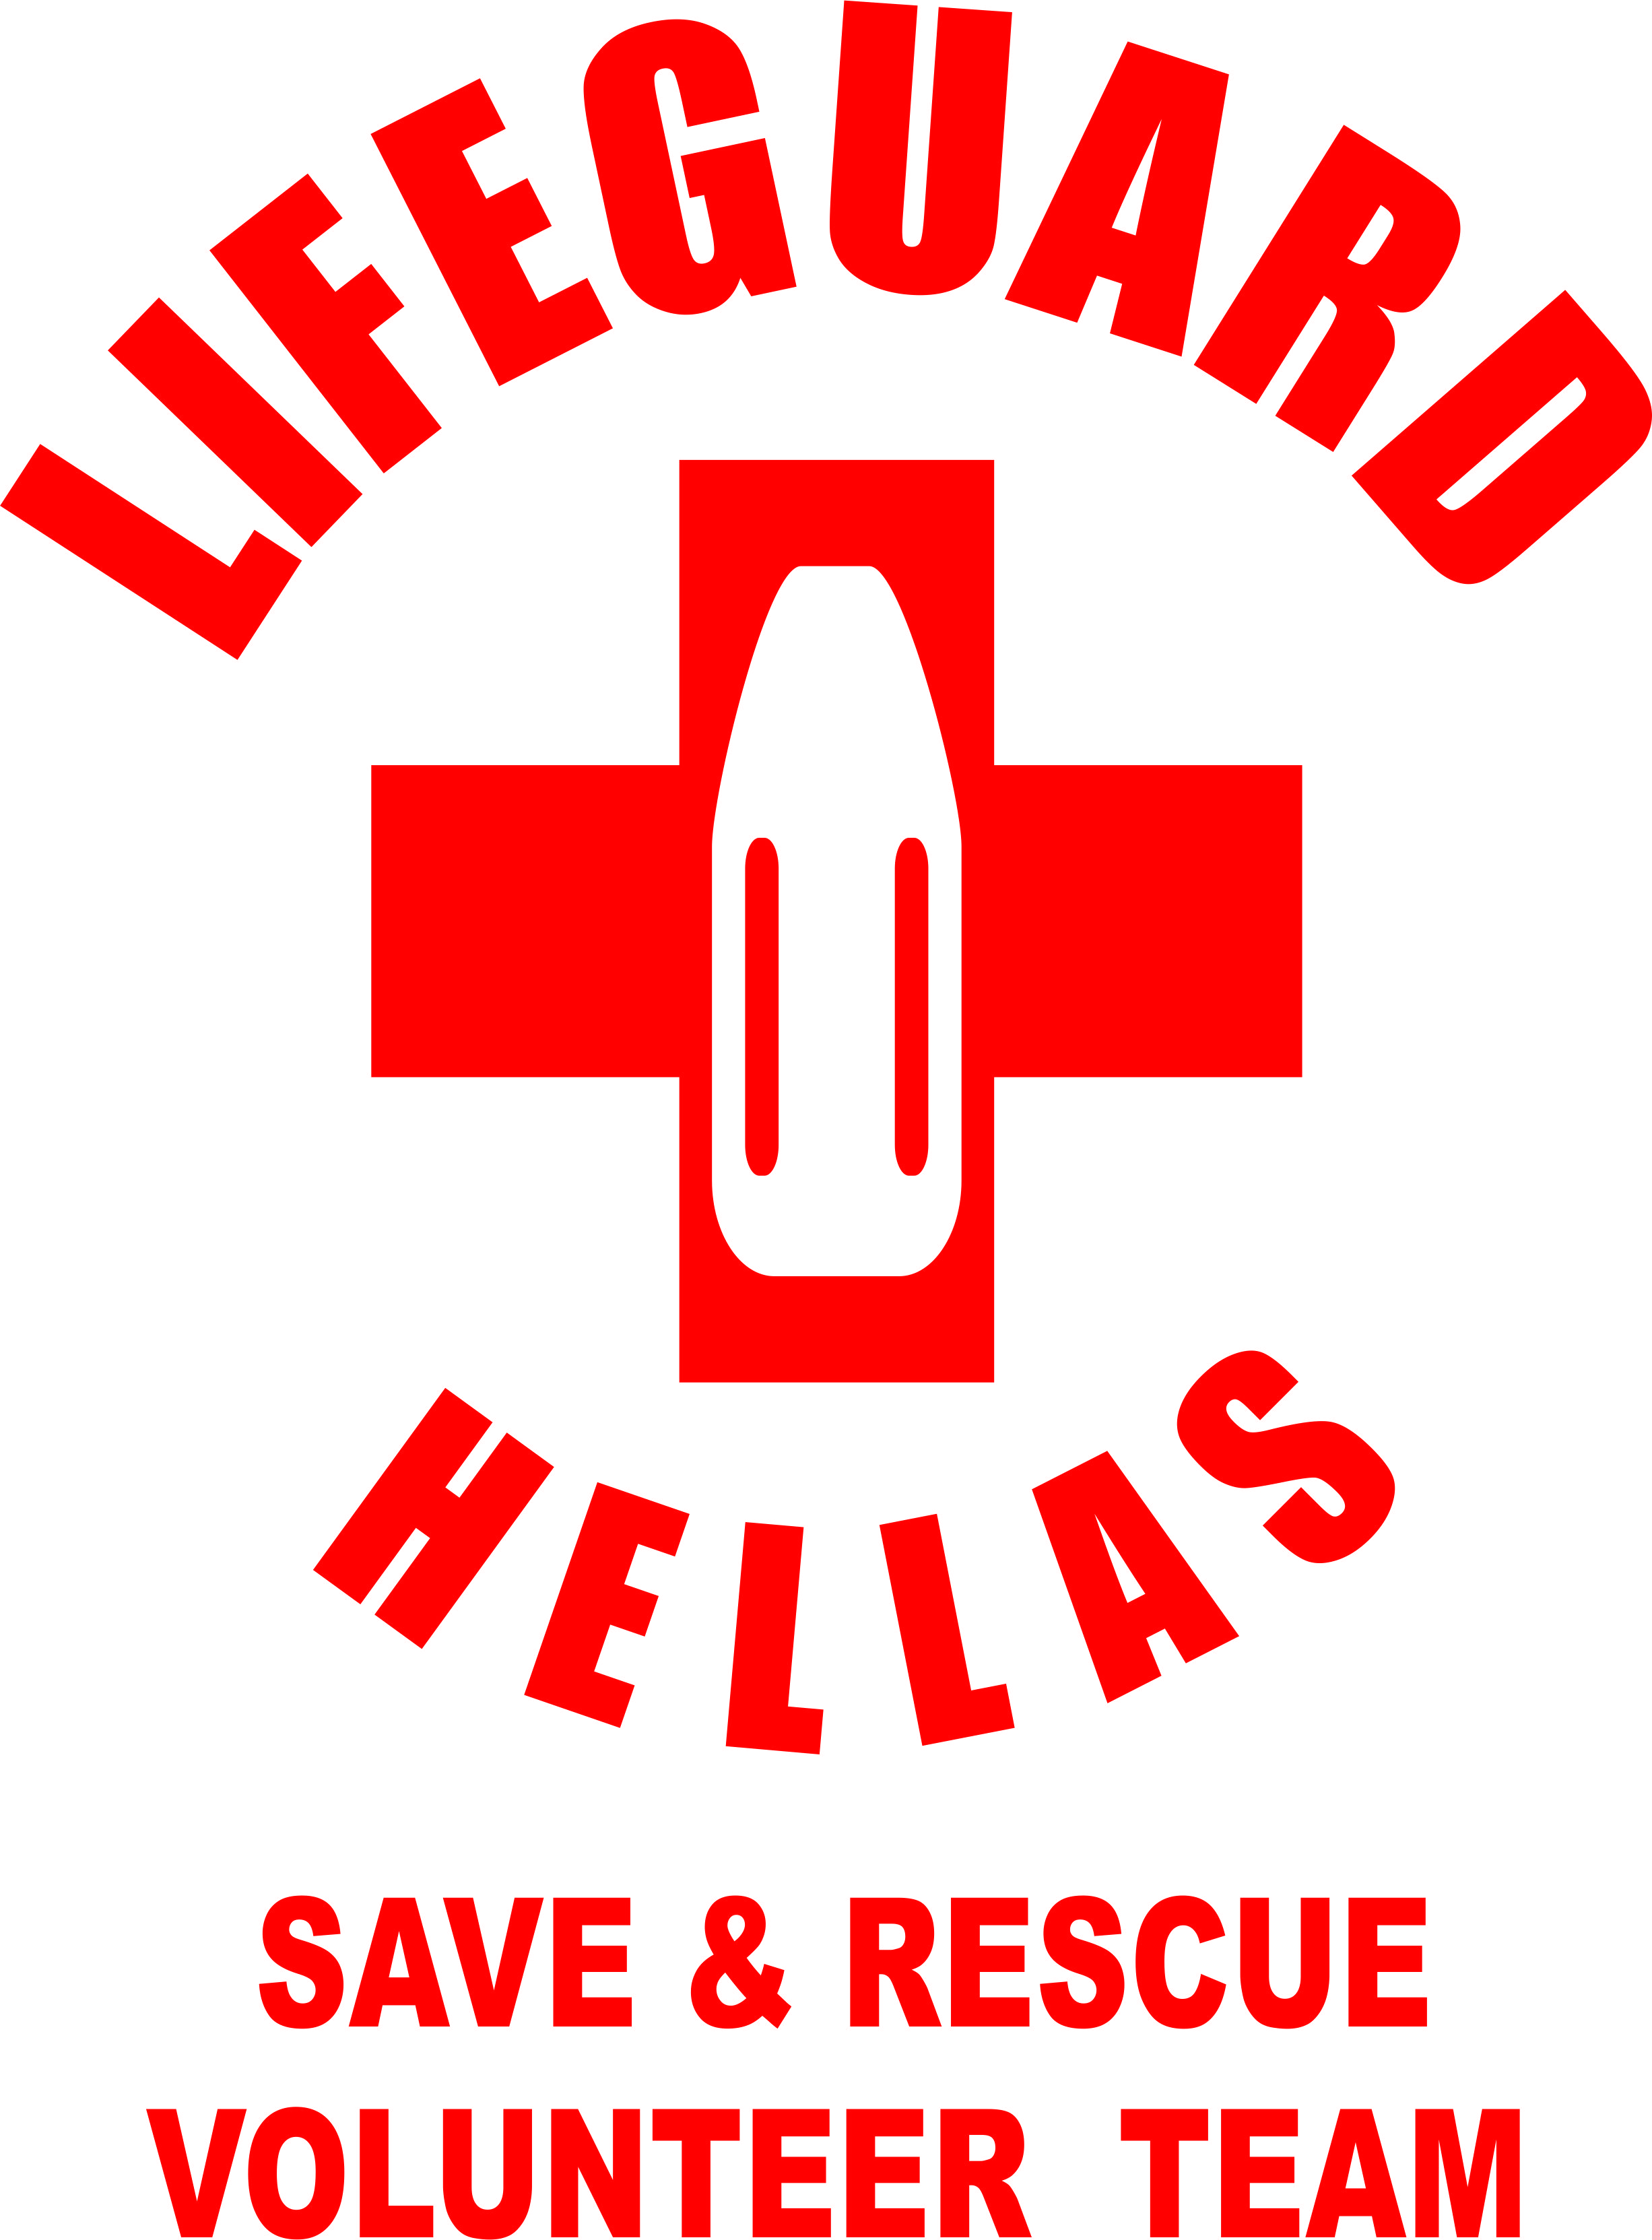 LifeguardHellas-Logo.jpeg